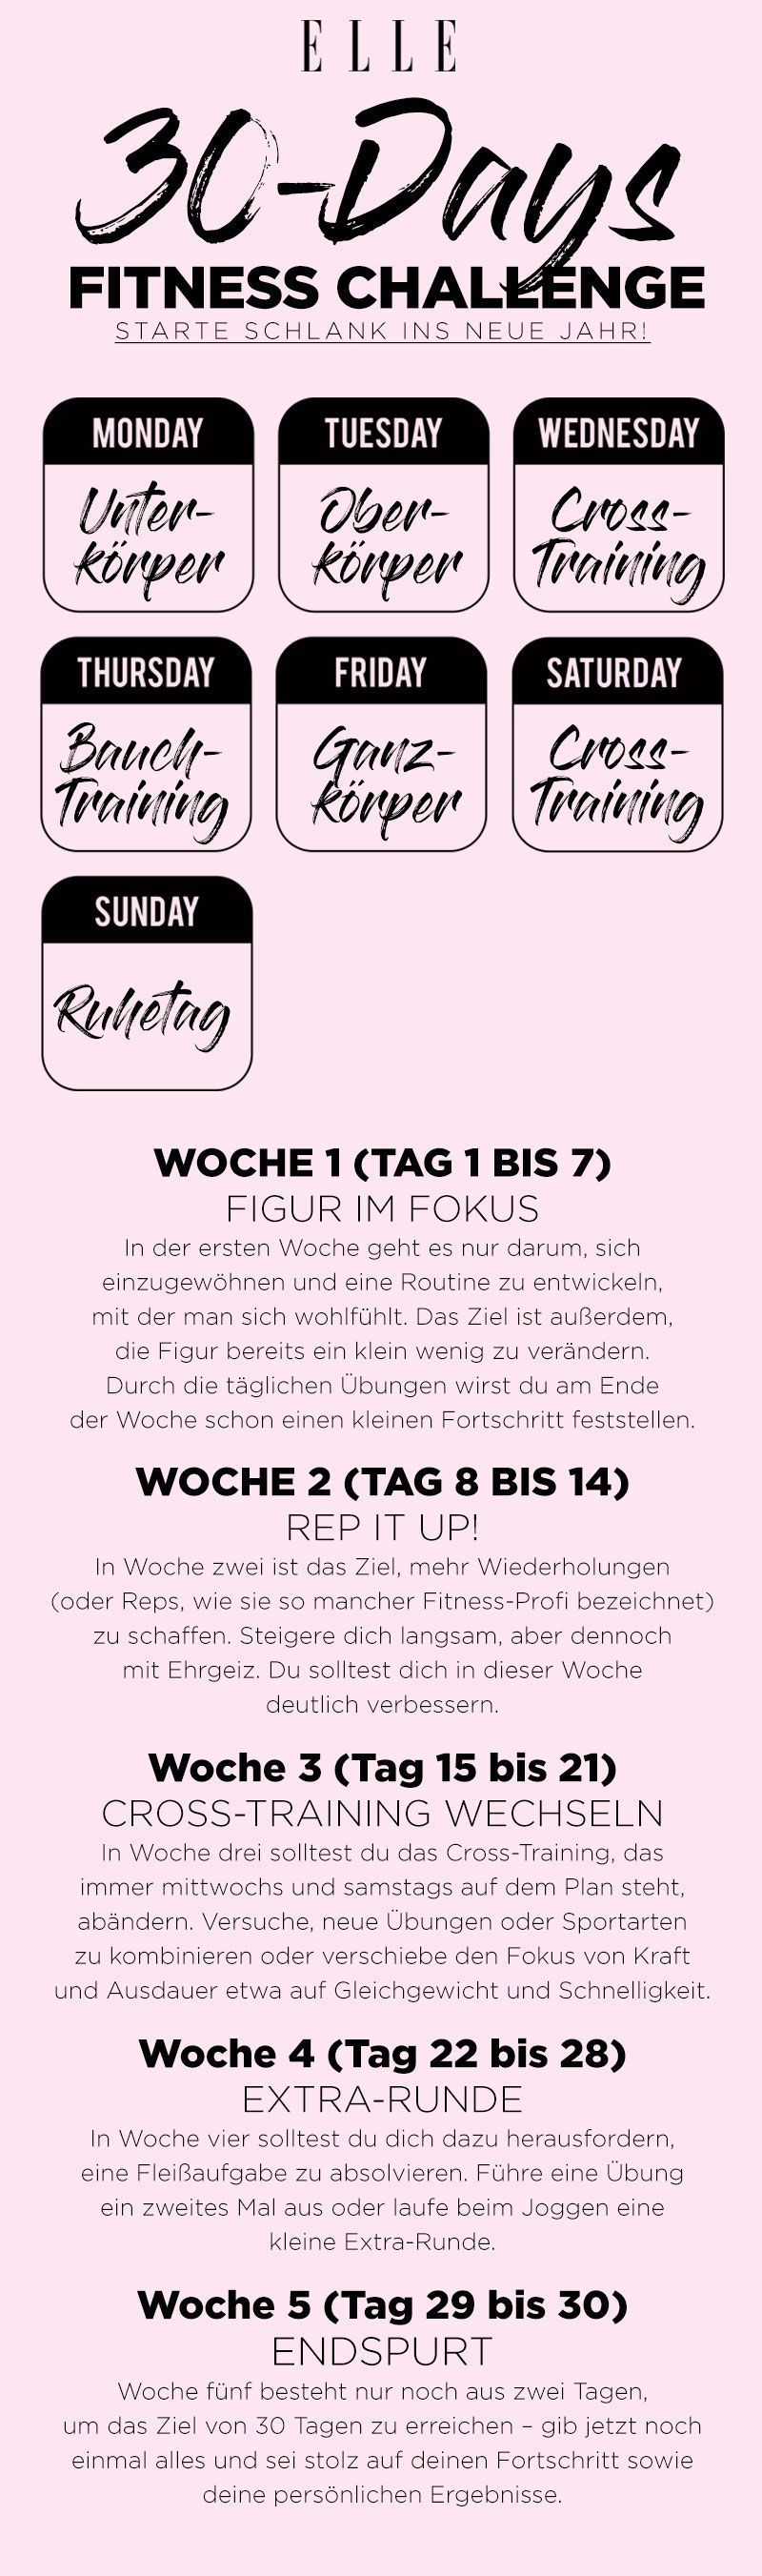 #fitnesschallenge #womensworkout #femalefitness #jahrfitness #workoutplan #challenge #fitness #worko...